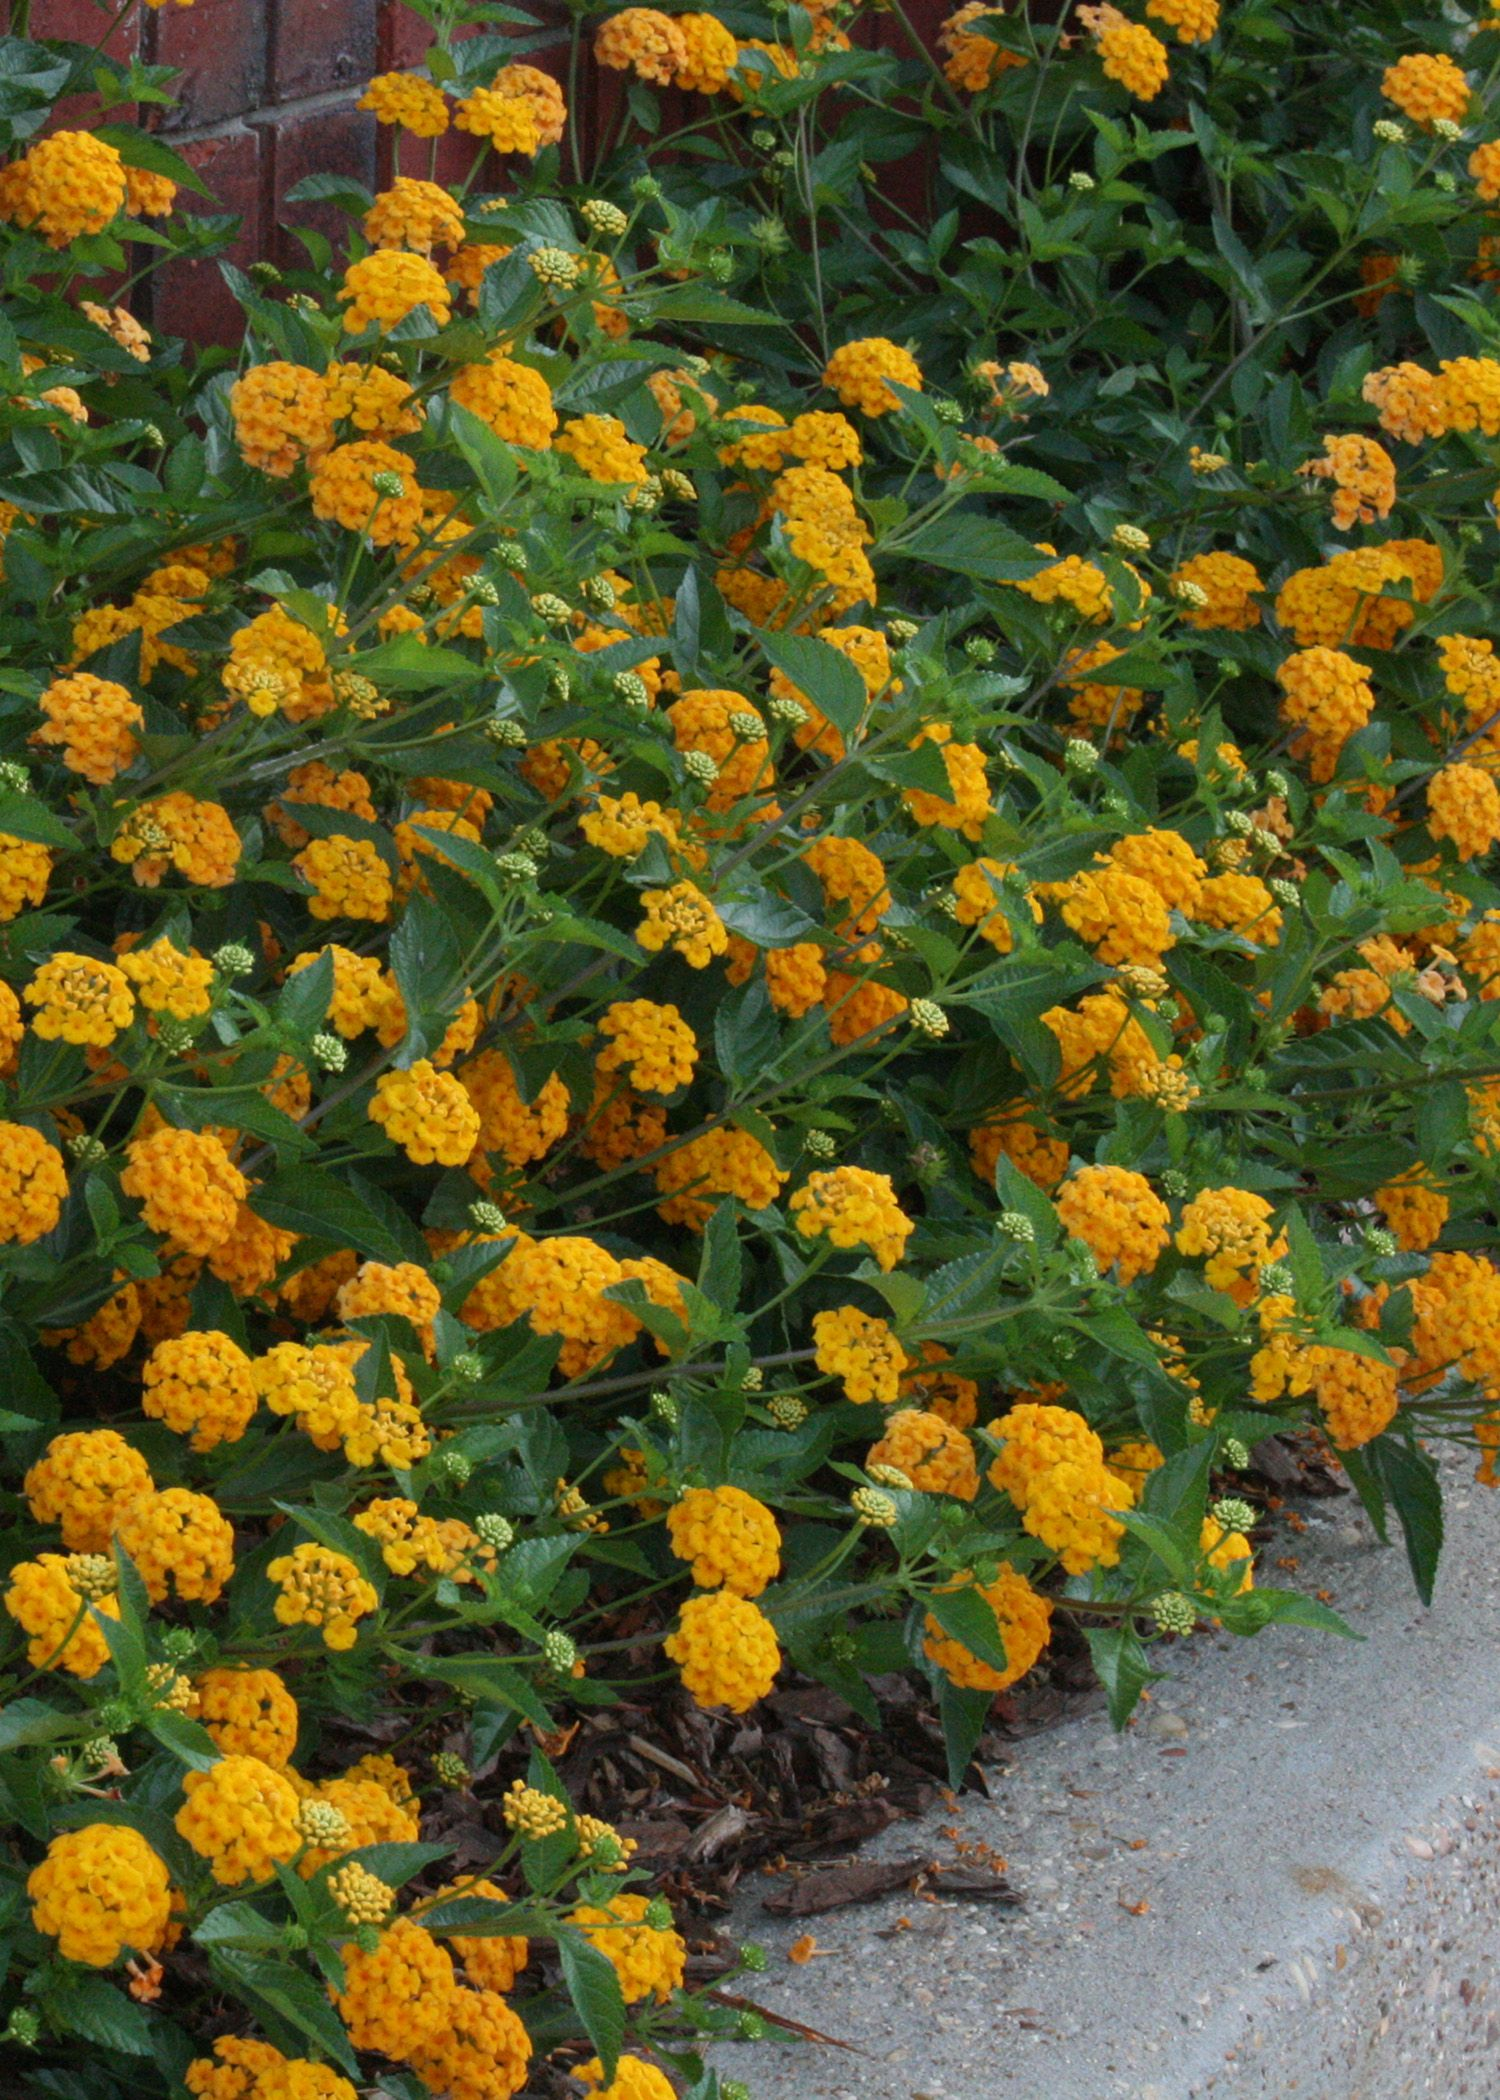 New Gold Lantana Is A Vigorous And Low Growing And Trailing Plant With Outstanding Golden Yello Backyard Plants Container Gardening Container Gardening Flowers